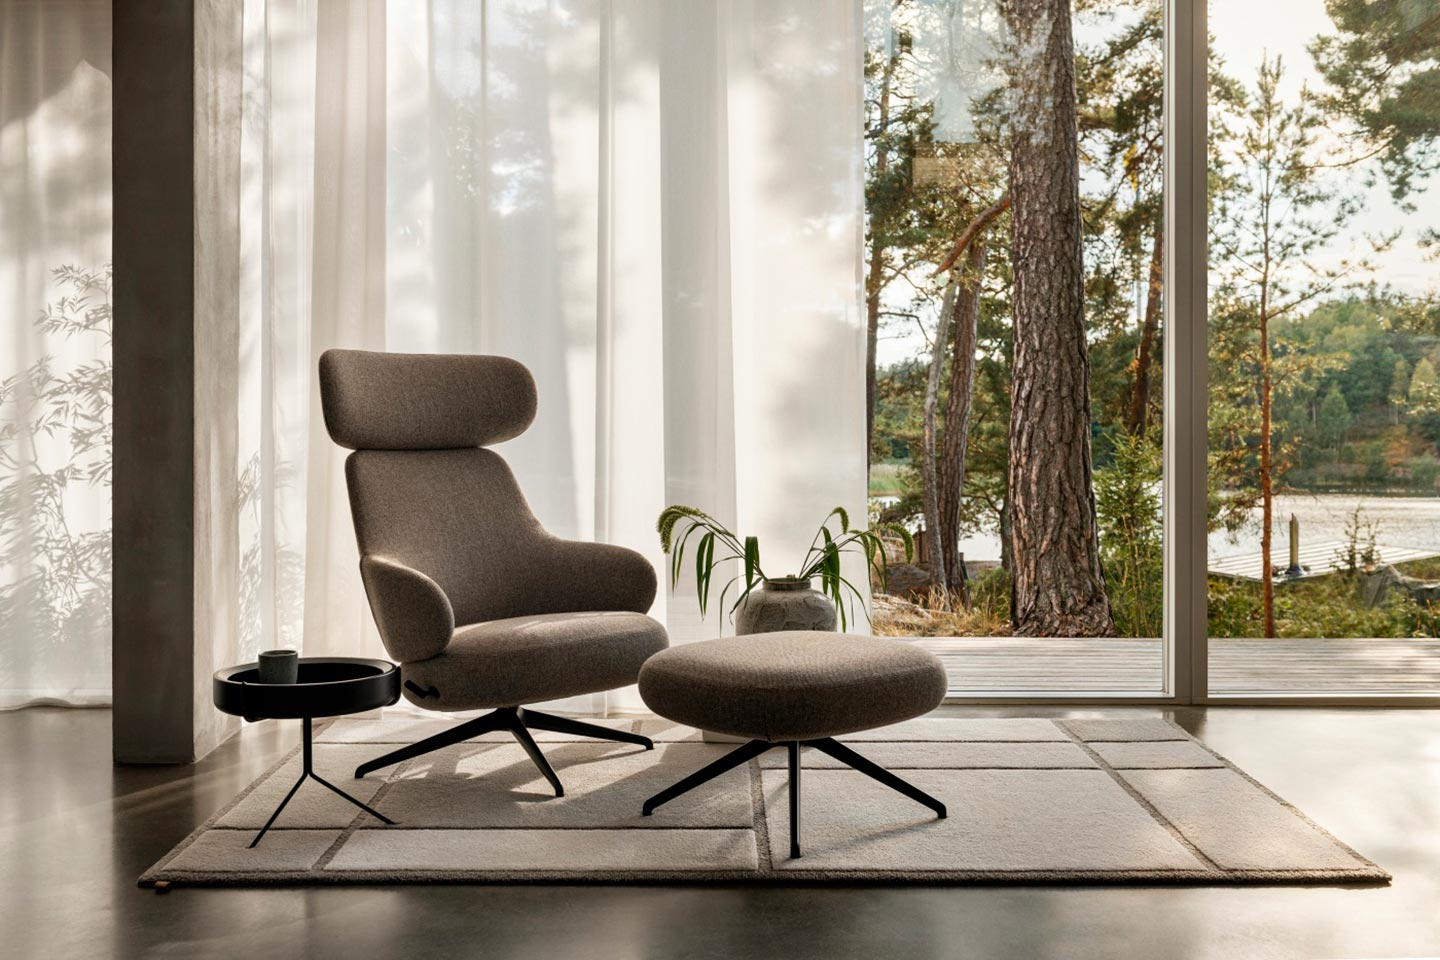 SILLON RELAX . SWEDESE BR